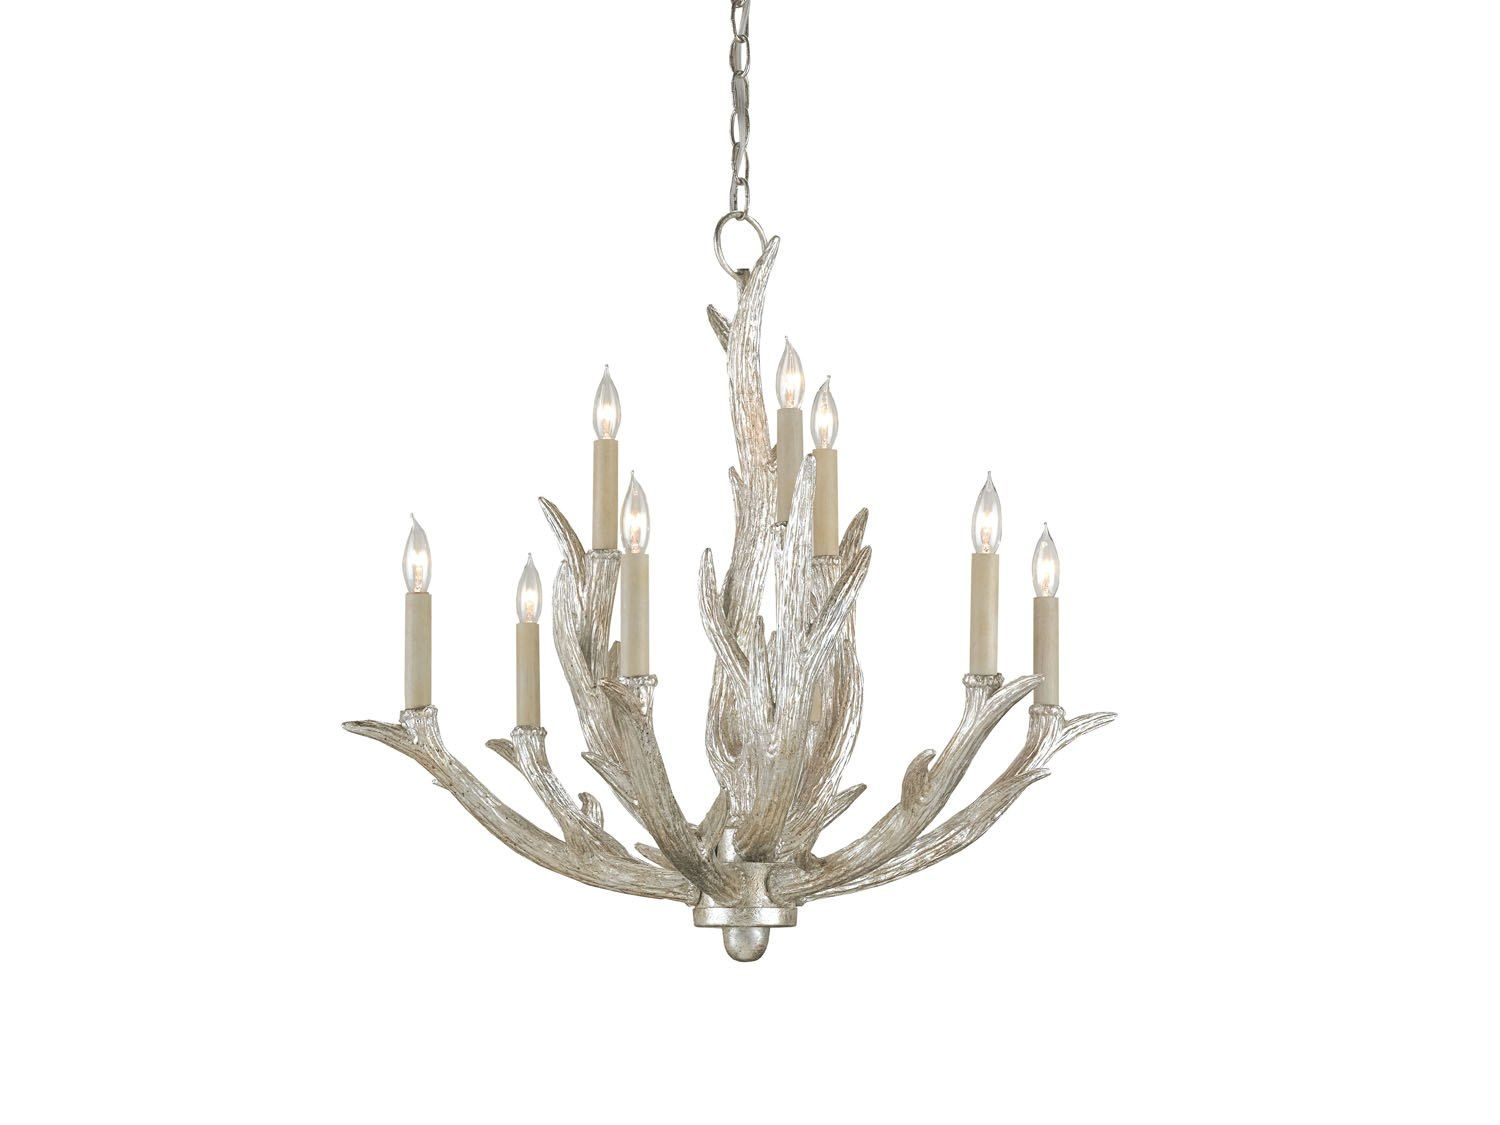 Currey And Company Lighting Currey Chandeliers Sale Chandelier Chandelier For Sale Mini Chandelier